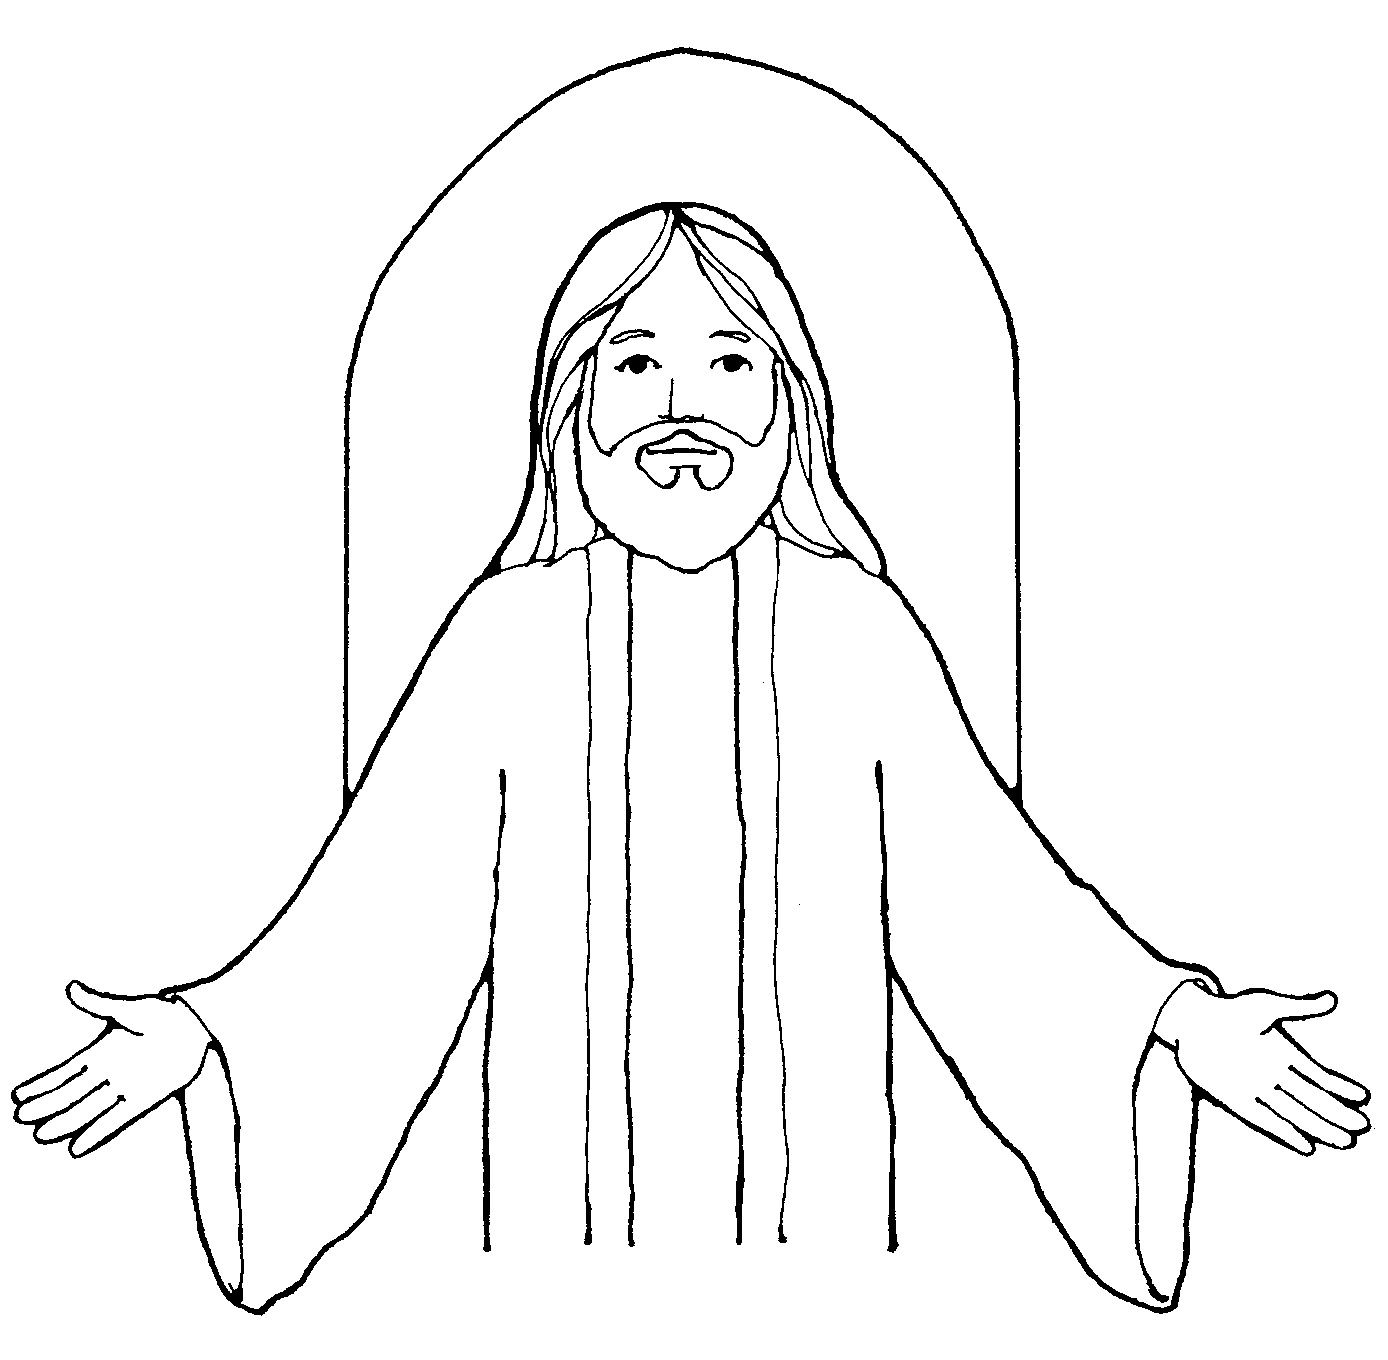 Free cartoon clipart reflecting good heart for christ picture free free lds clipart to color for primary children | This black and ... picture free